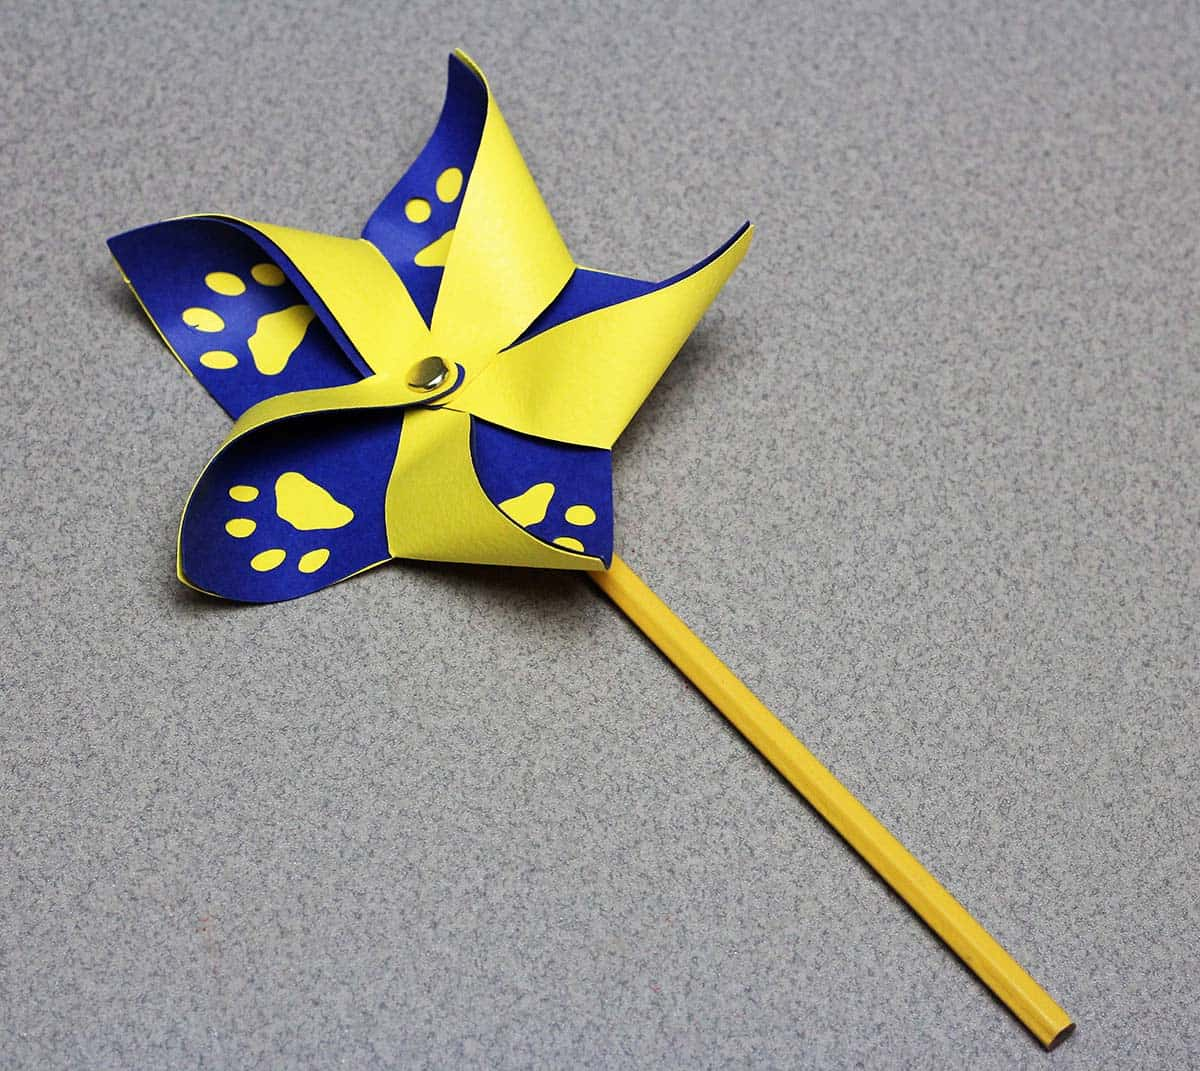 Cub Scout pinwheel made with Cricut